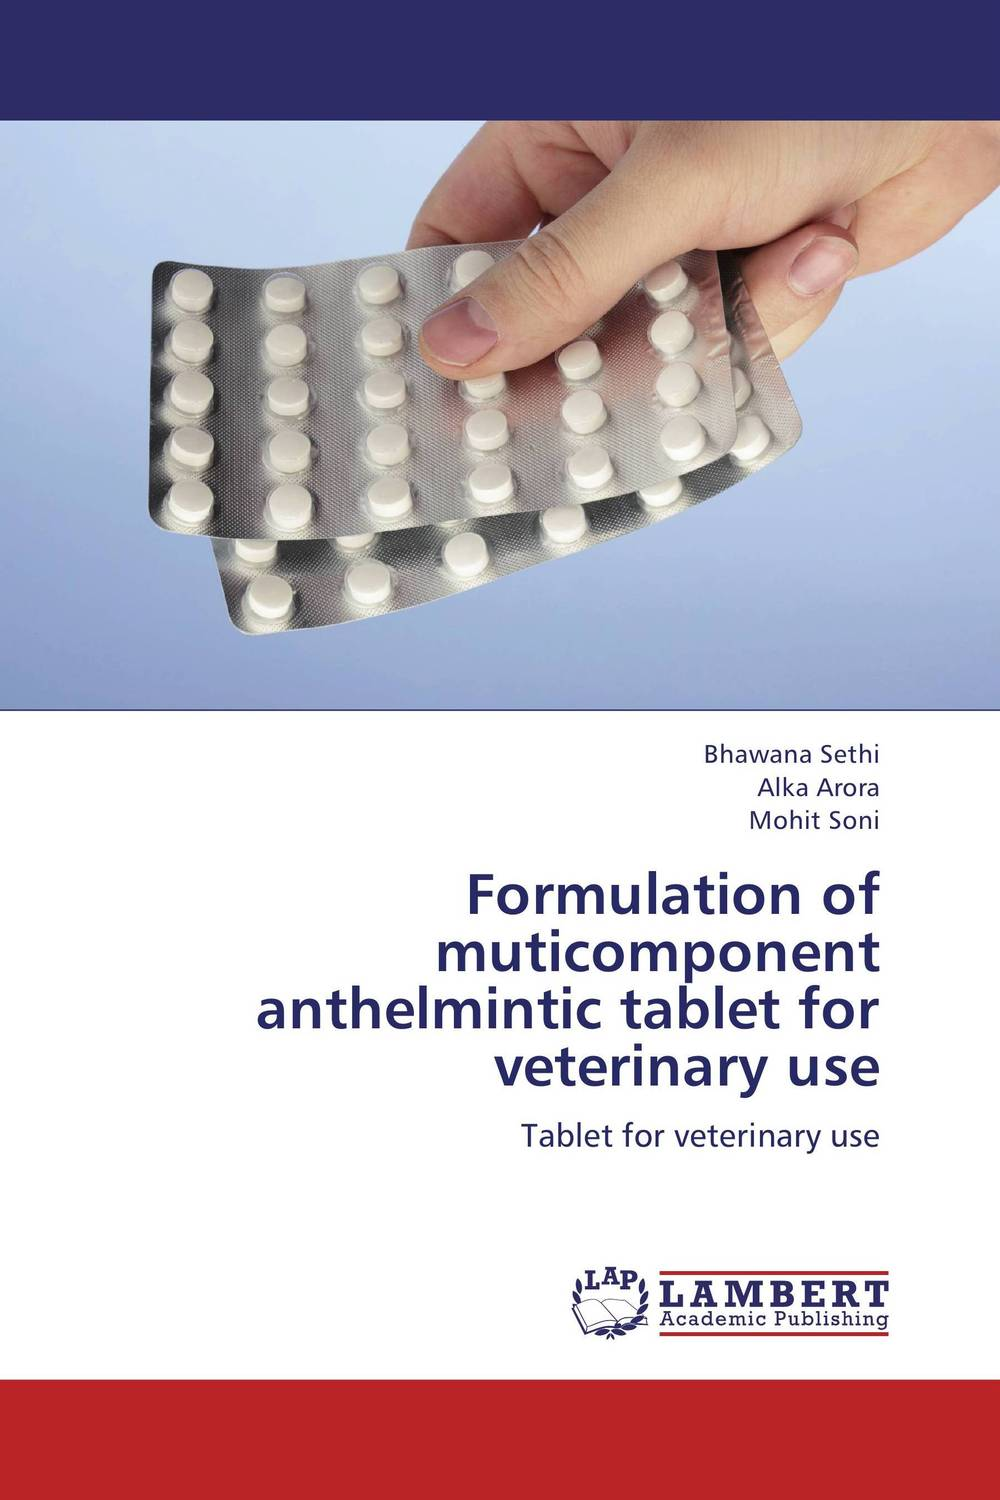 Formulation of muticomponent anthelmintic tablet for veterinary use found in brooklyn